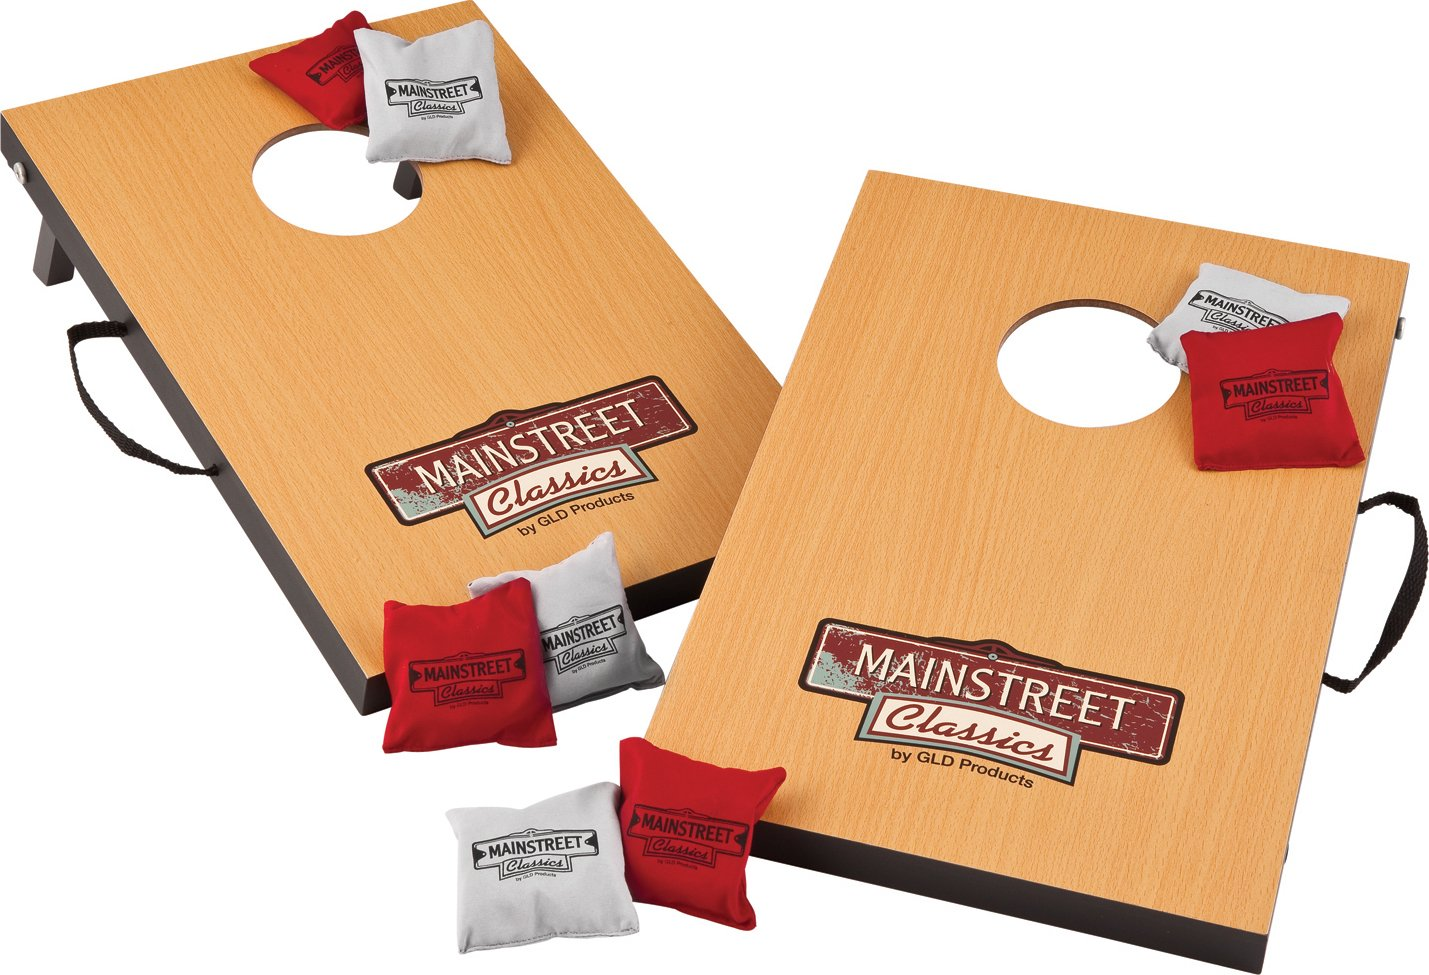 Mainstreet Classics Micro Bean Bag Toss Game Set by Mainstreet Classics by GLD Products